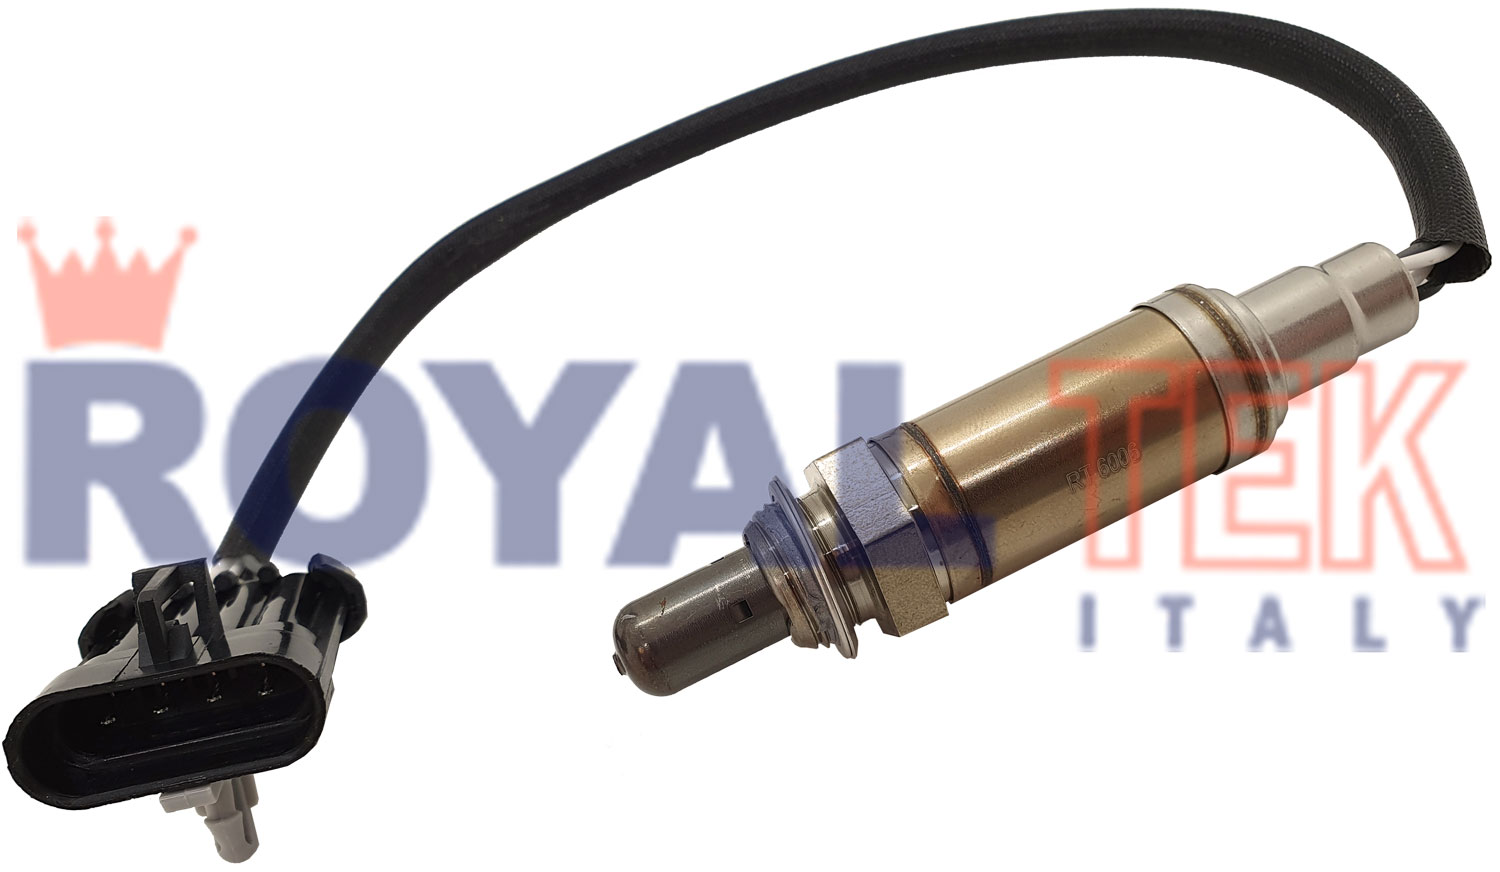 RT 6006 - SONDA LAMBDA ROYALTEK CHEVROLET CORSA 1.4 8V 2006 EN ADELANTE - 4 CABLES - LARGO DEL CABLE 295mm --- OEM 93338741